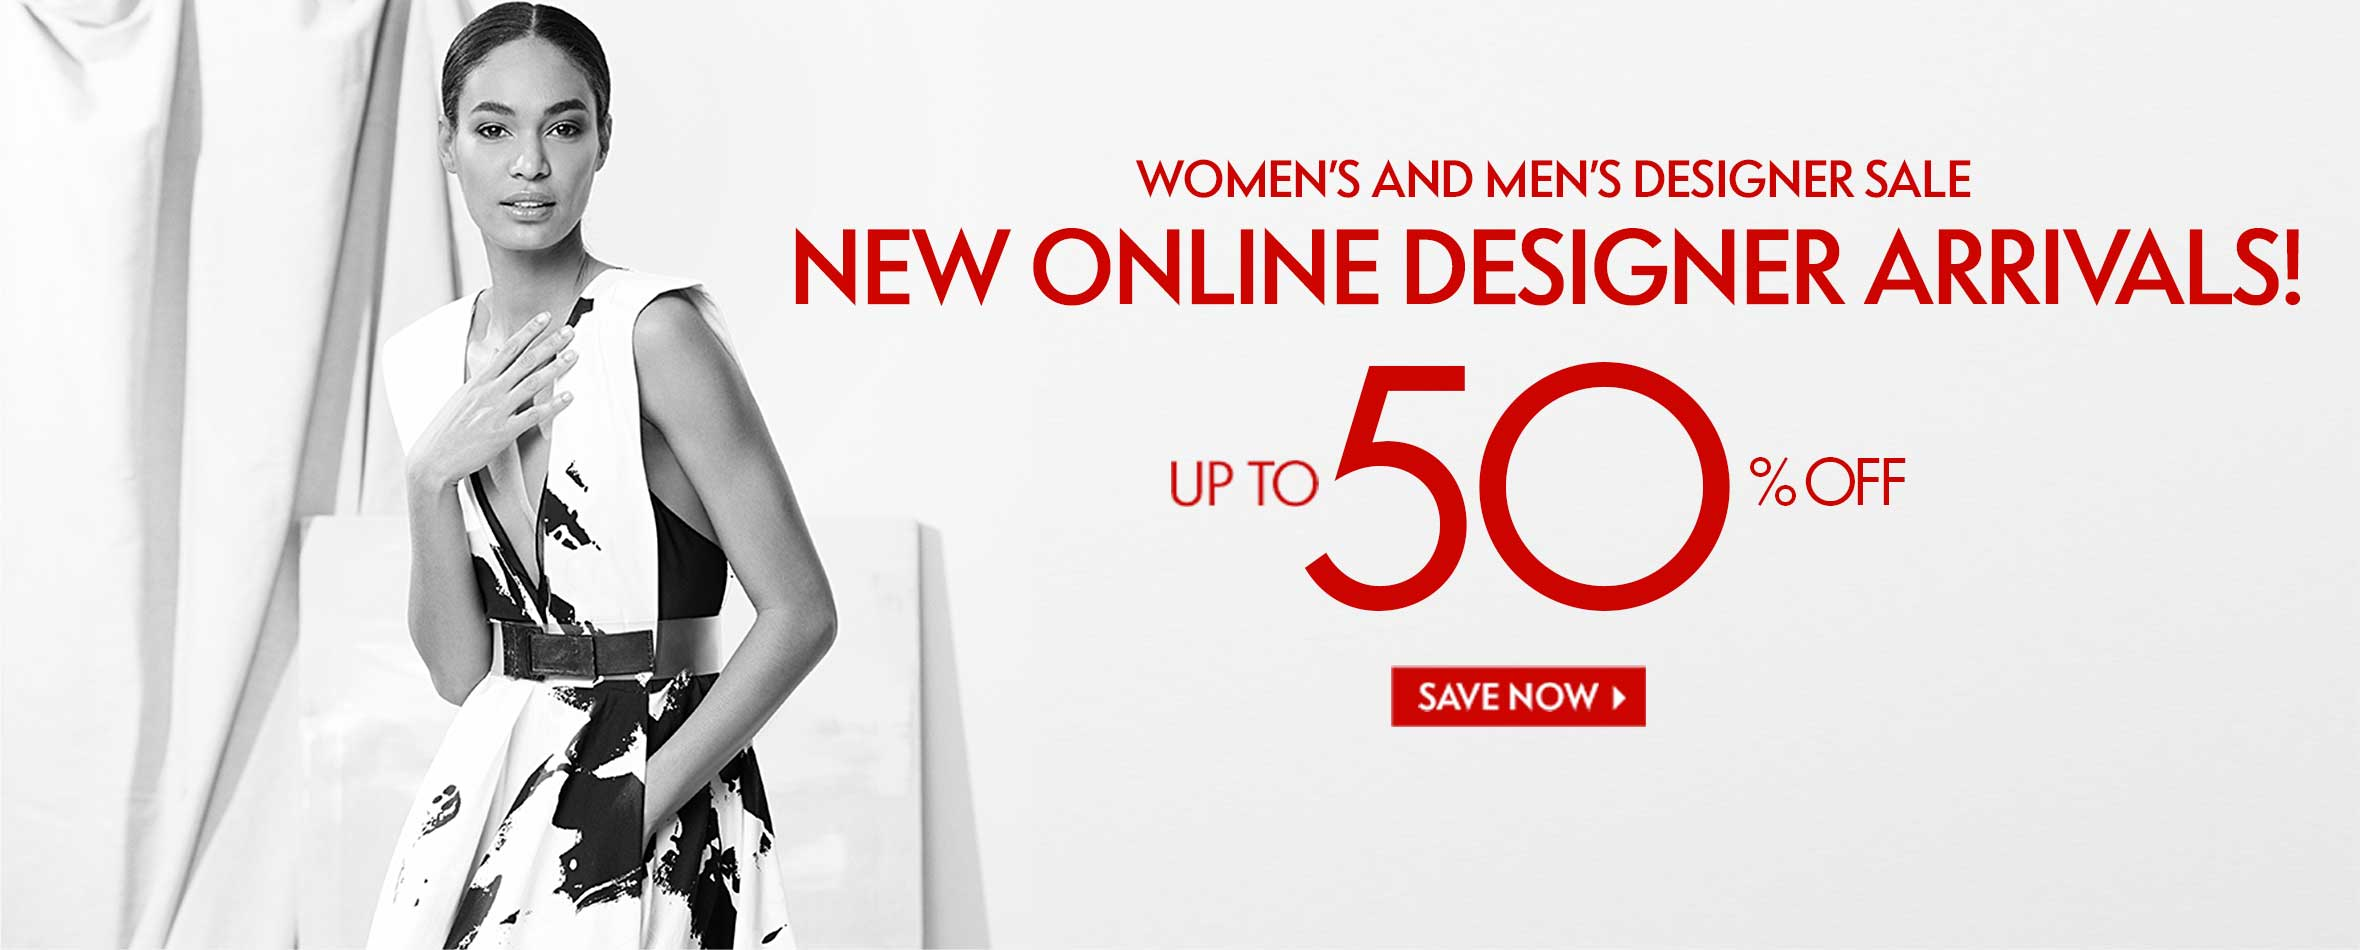 Save up to 50% off men & women's designer + free express global shipping on orders $175 at NeimanMarcus.com